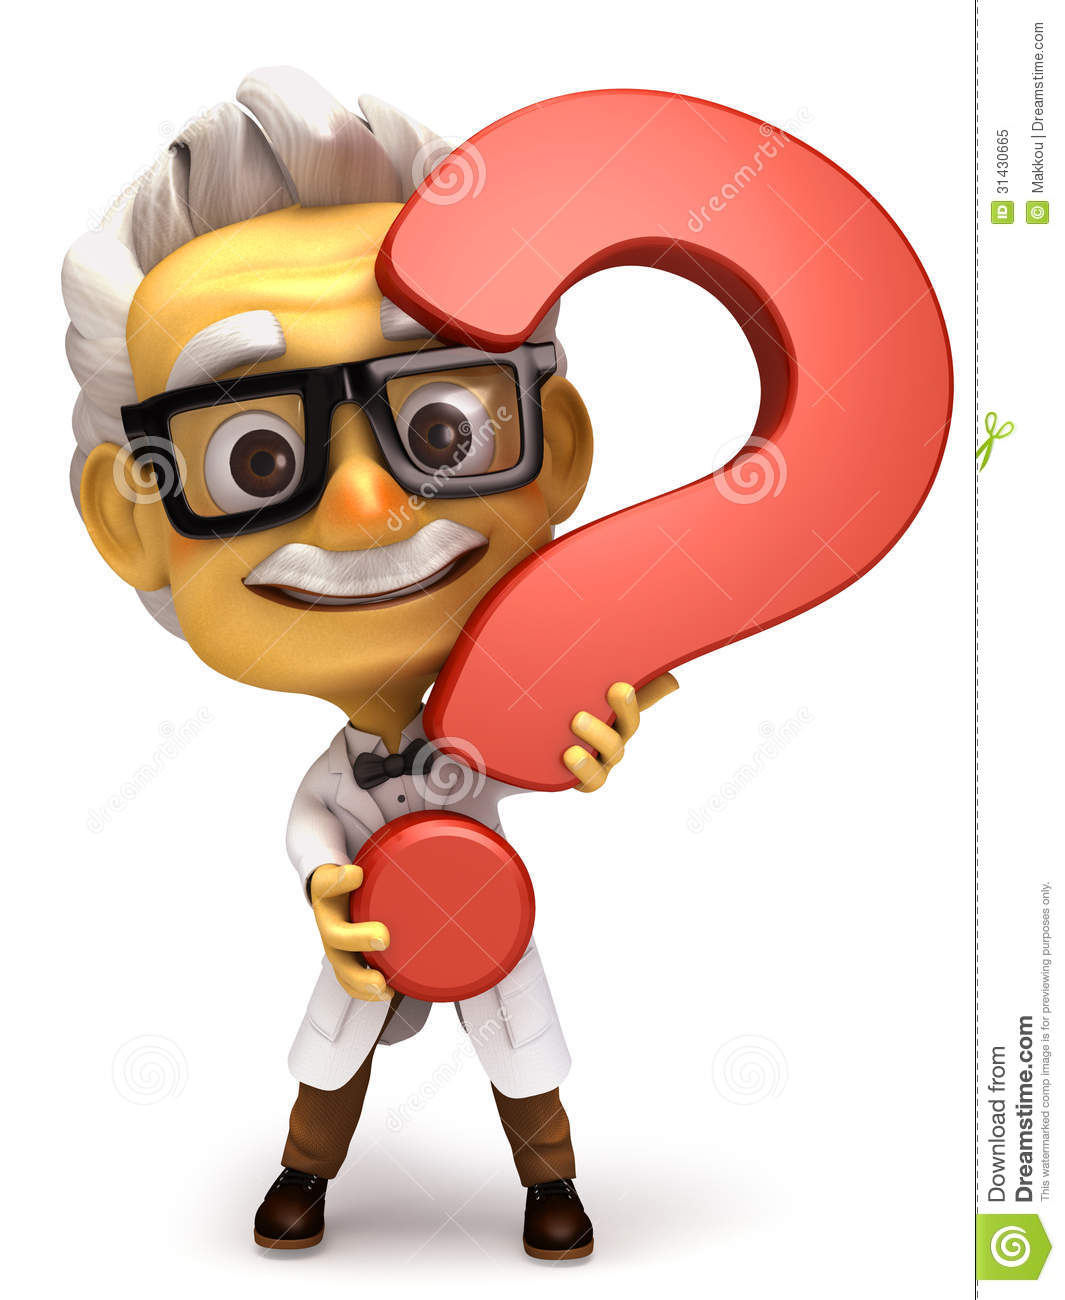 Professor With Question Mark Symbol Royalty Free Stock Photo - Image ...